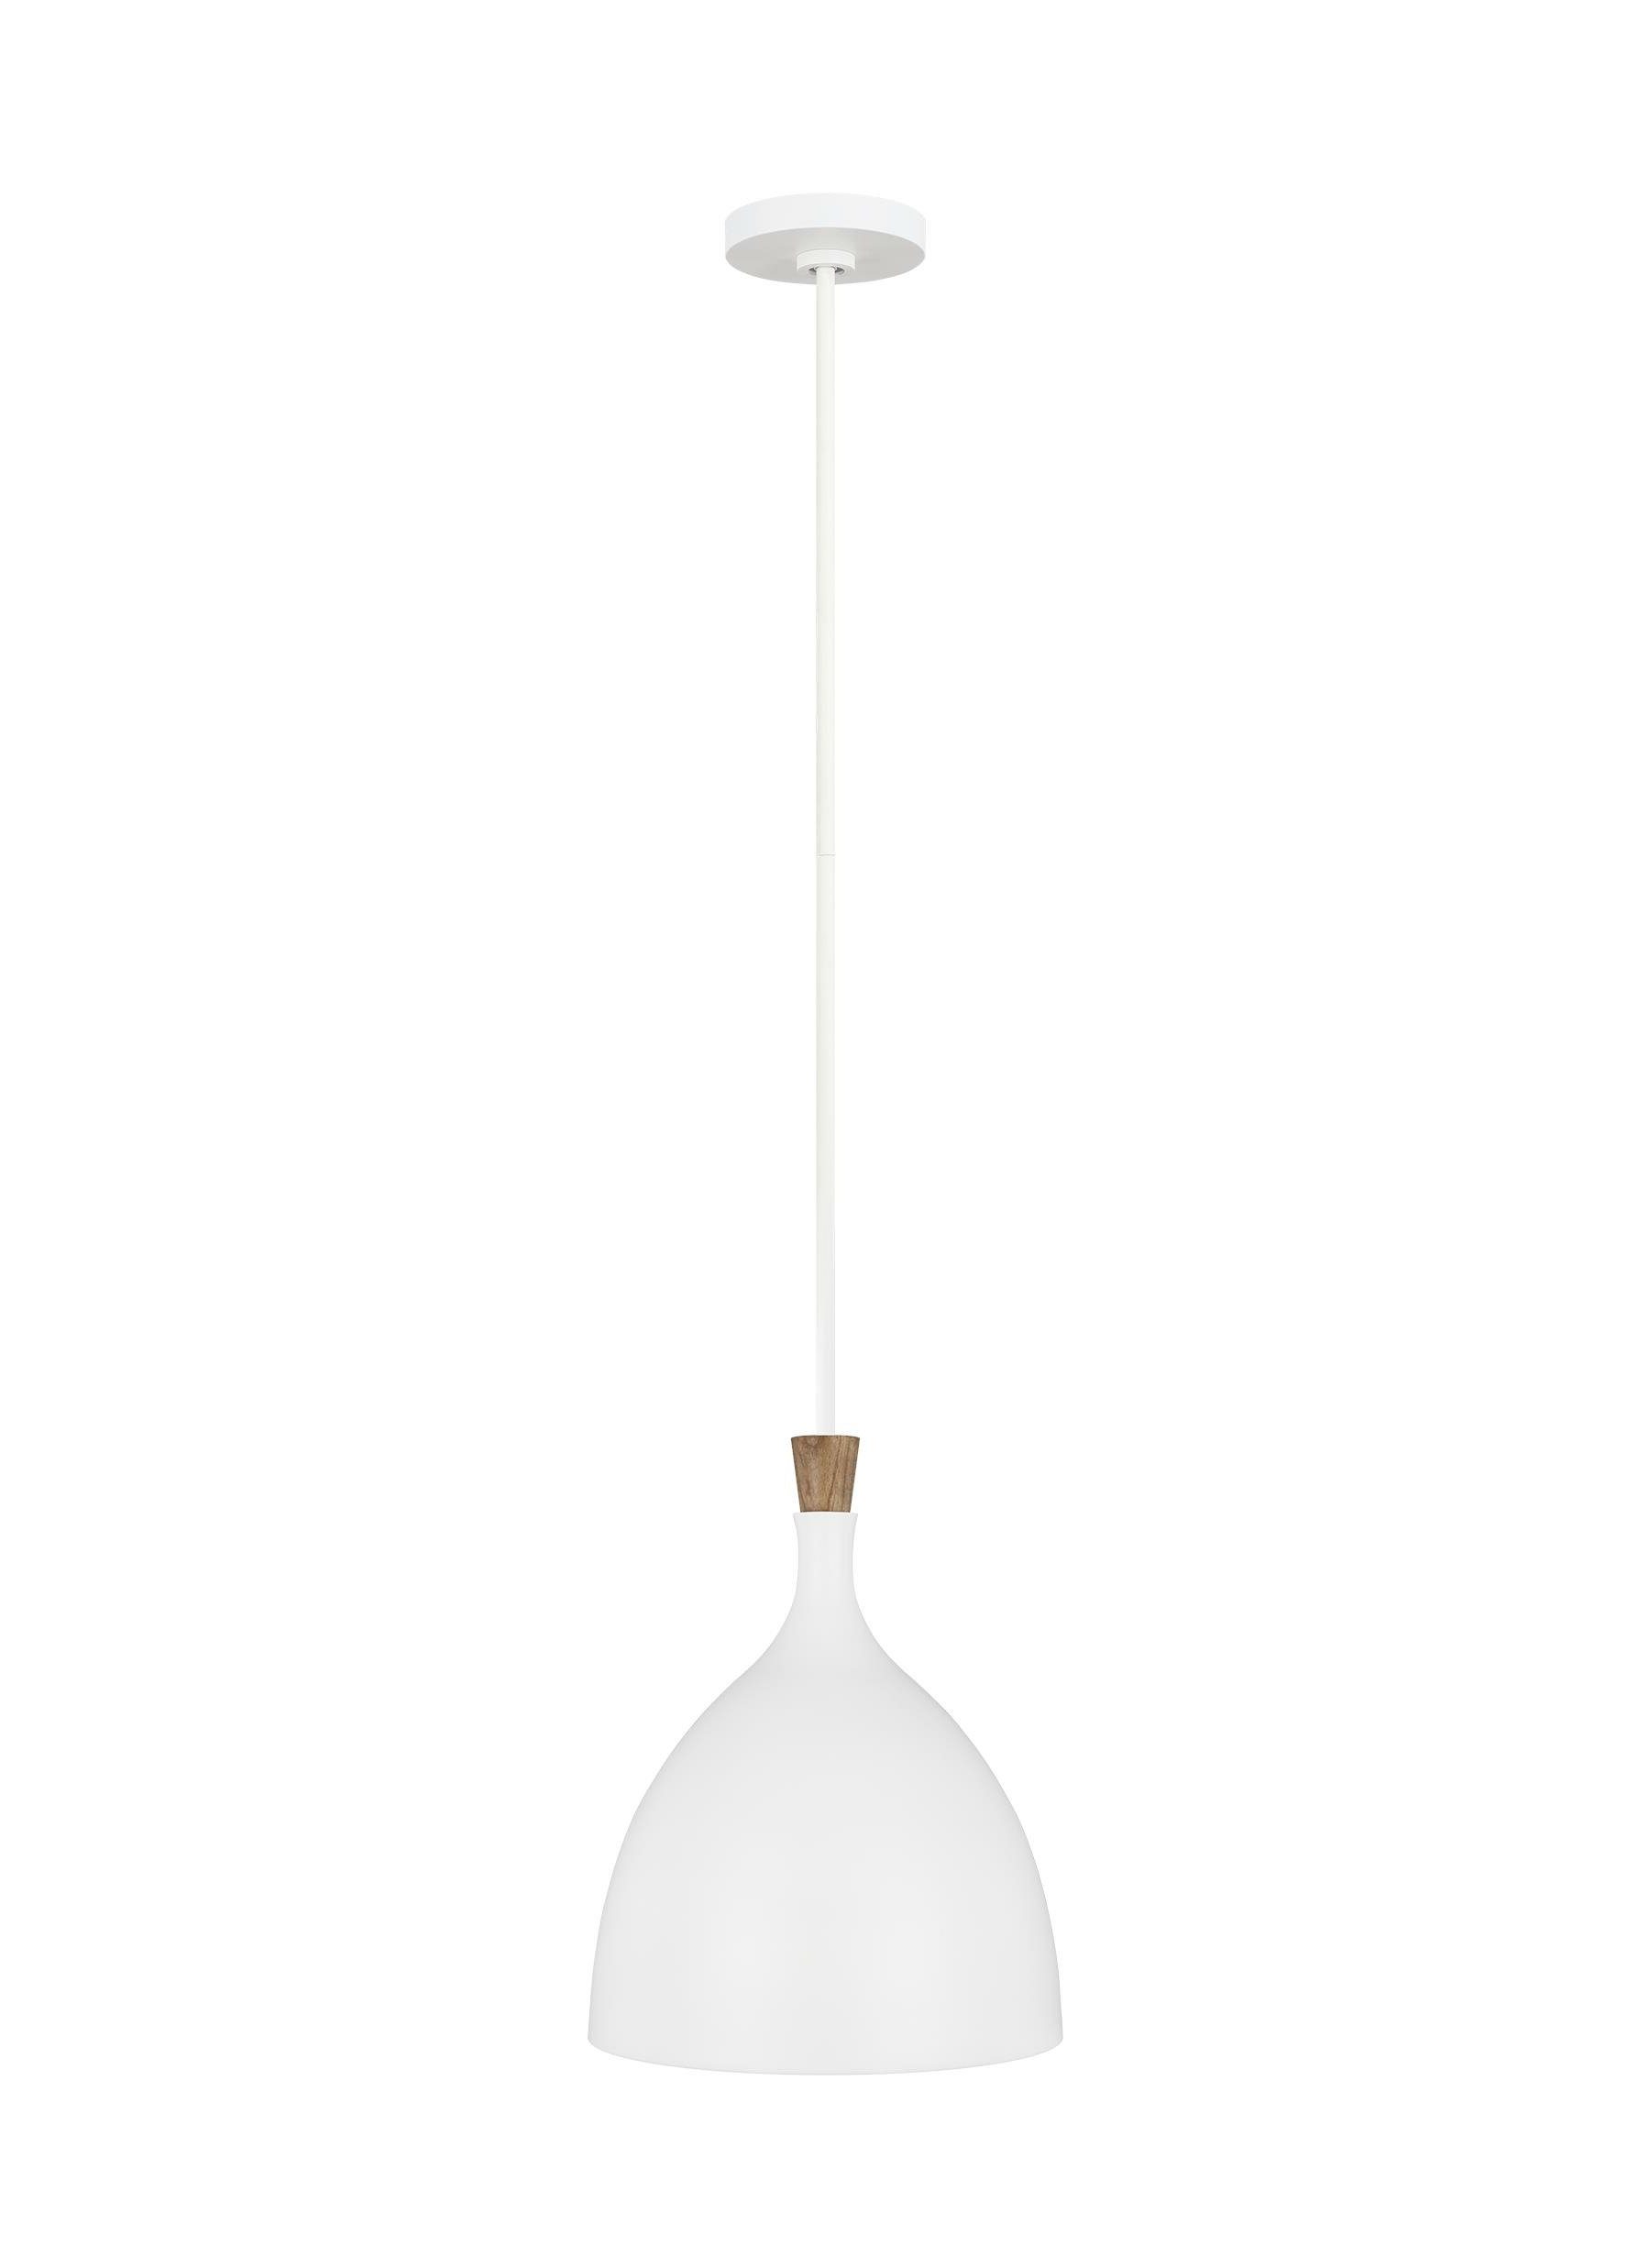 2020 Monadnock 1 Light Single Dome Pendants In Darwin 1 Light Single Dome Pendant (View 1 of 20)